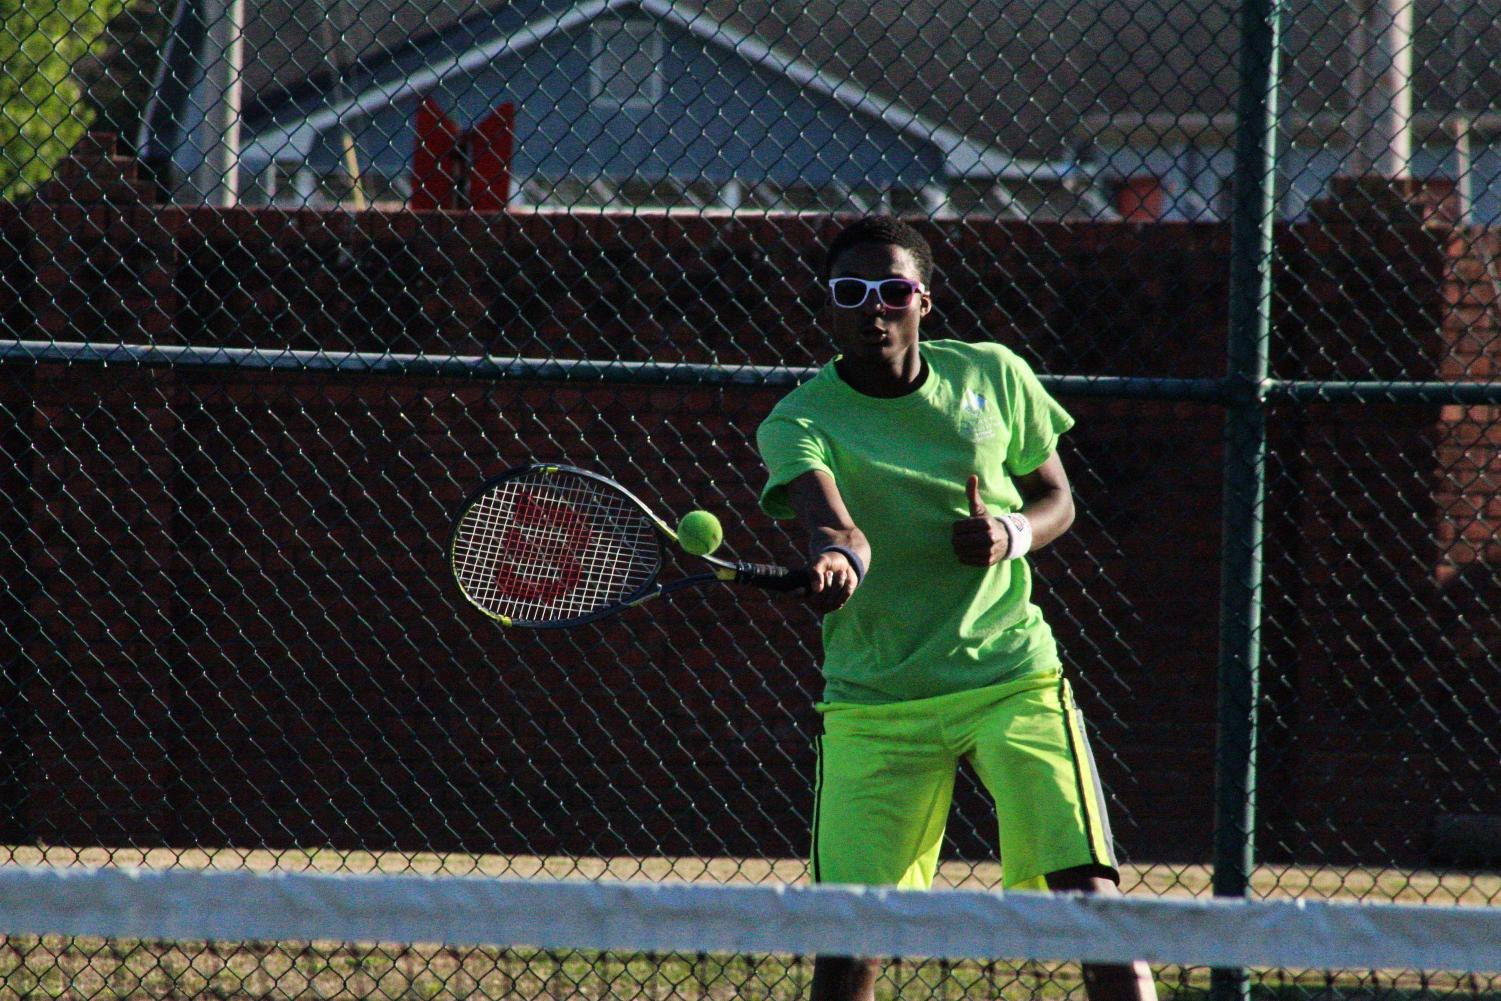 Ezra McWilliams  is one of the two Blue Waves Tennis  players advancing to State Championships in Singles Matches.